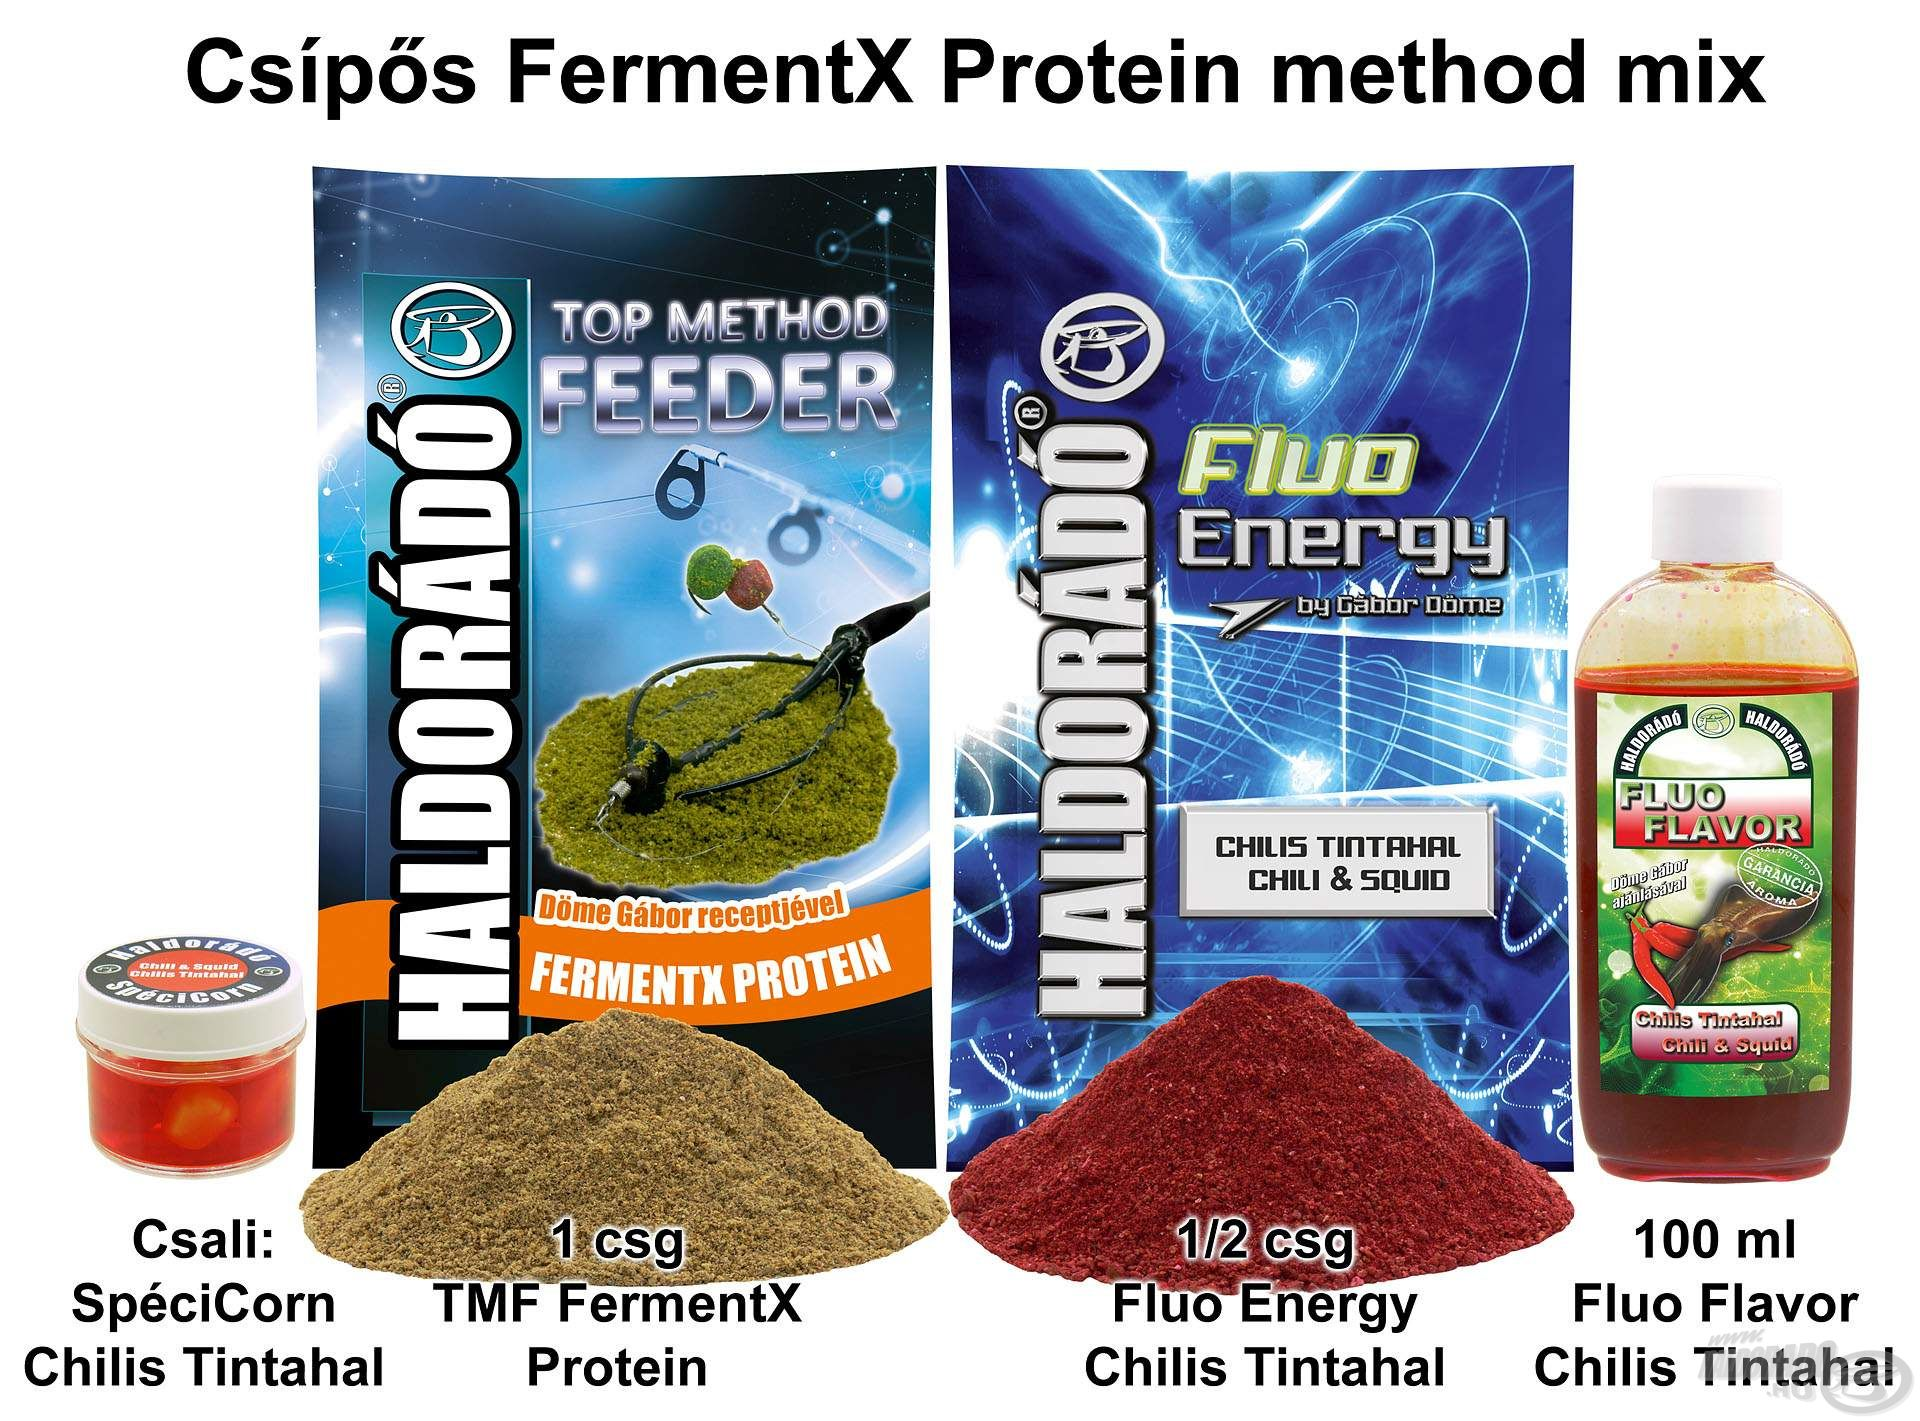 Csípős FermentX Protein method mix